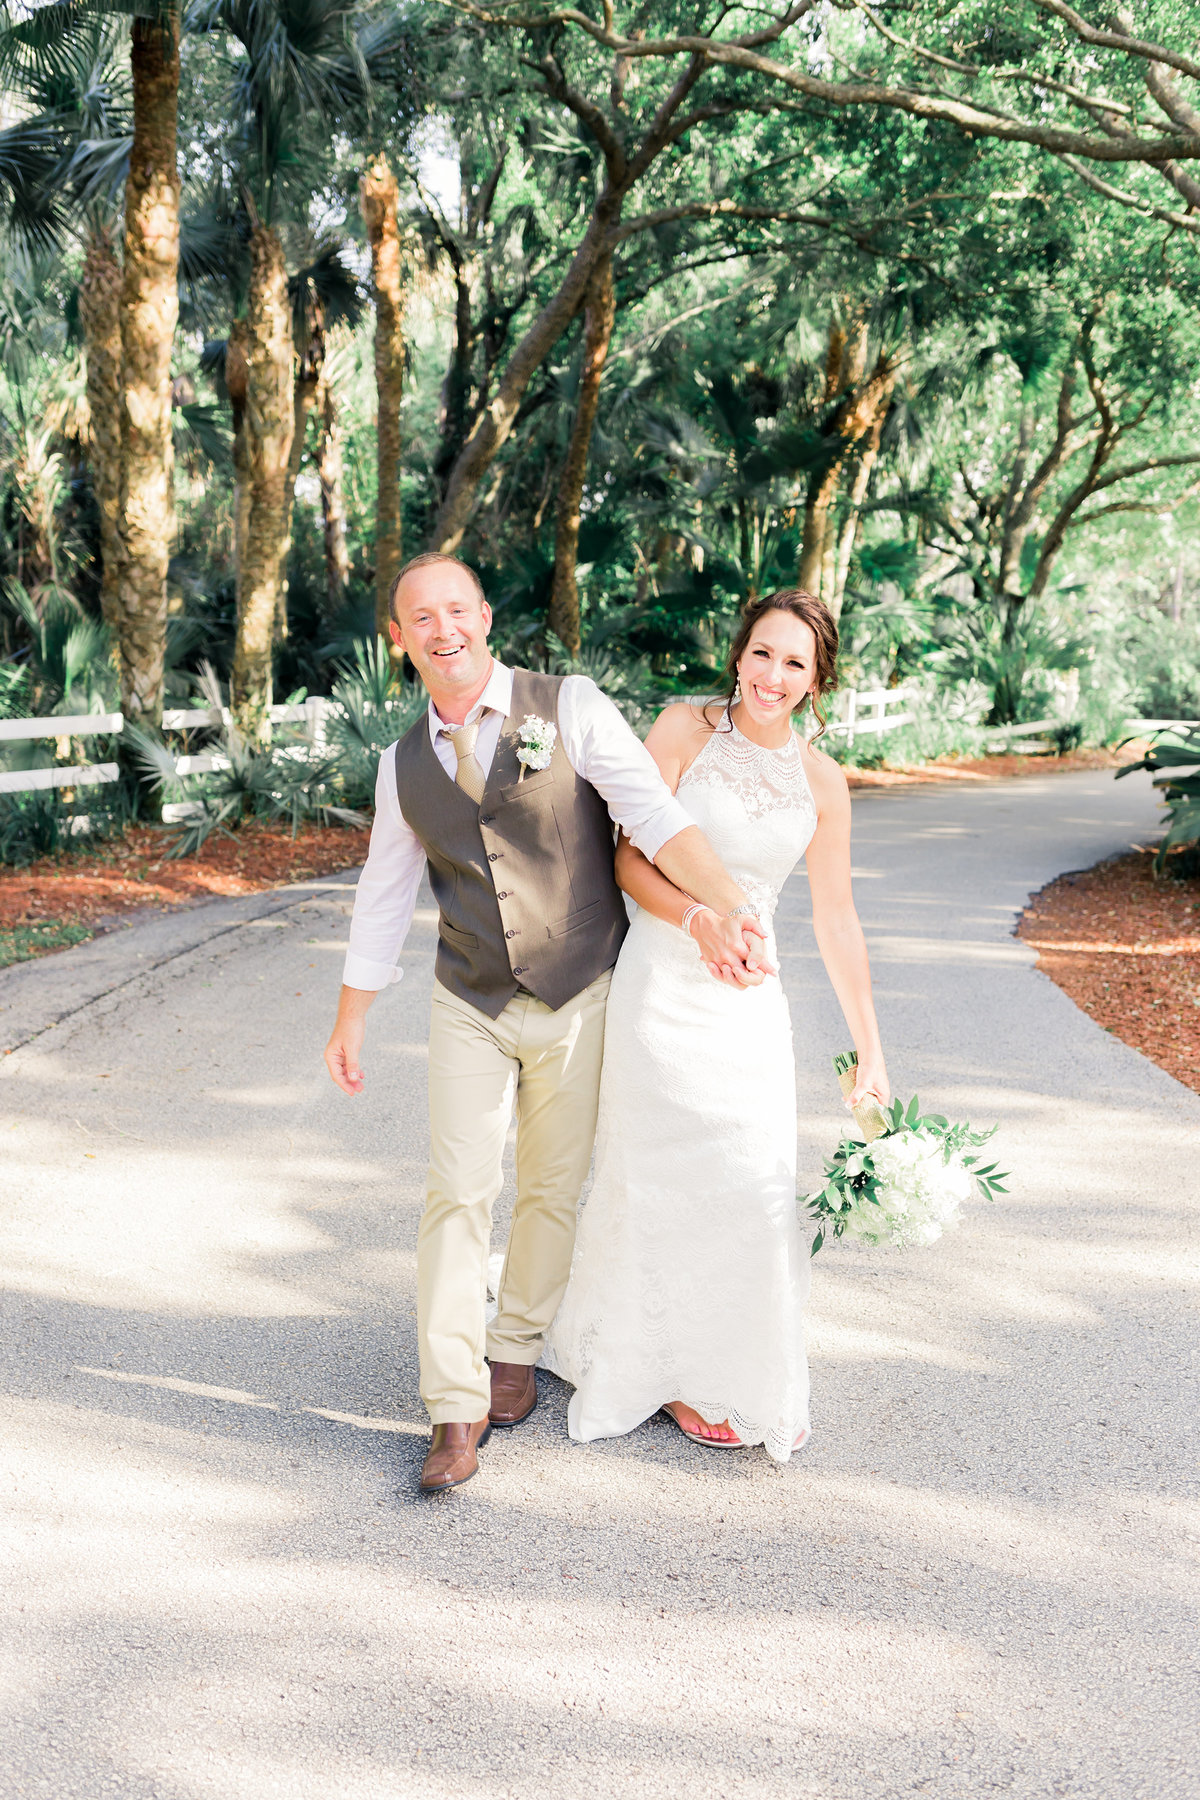 kimberly-hoyle-photography-kelly-david-grant-florida-wedding-72